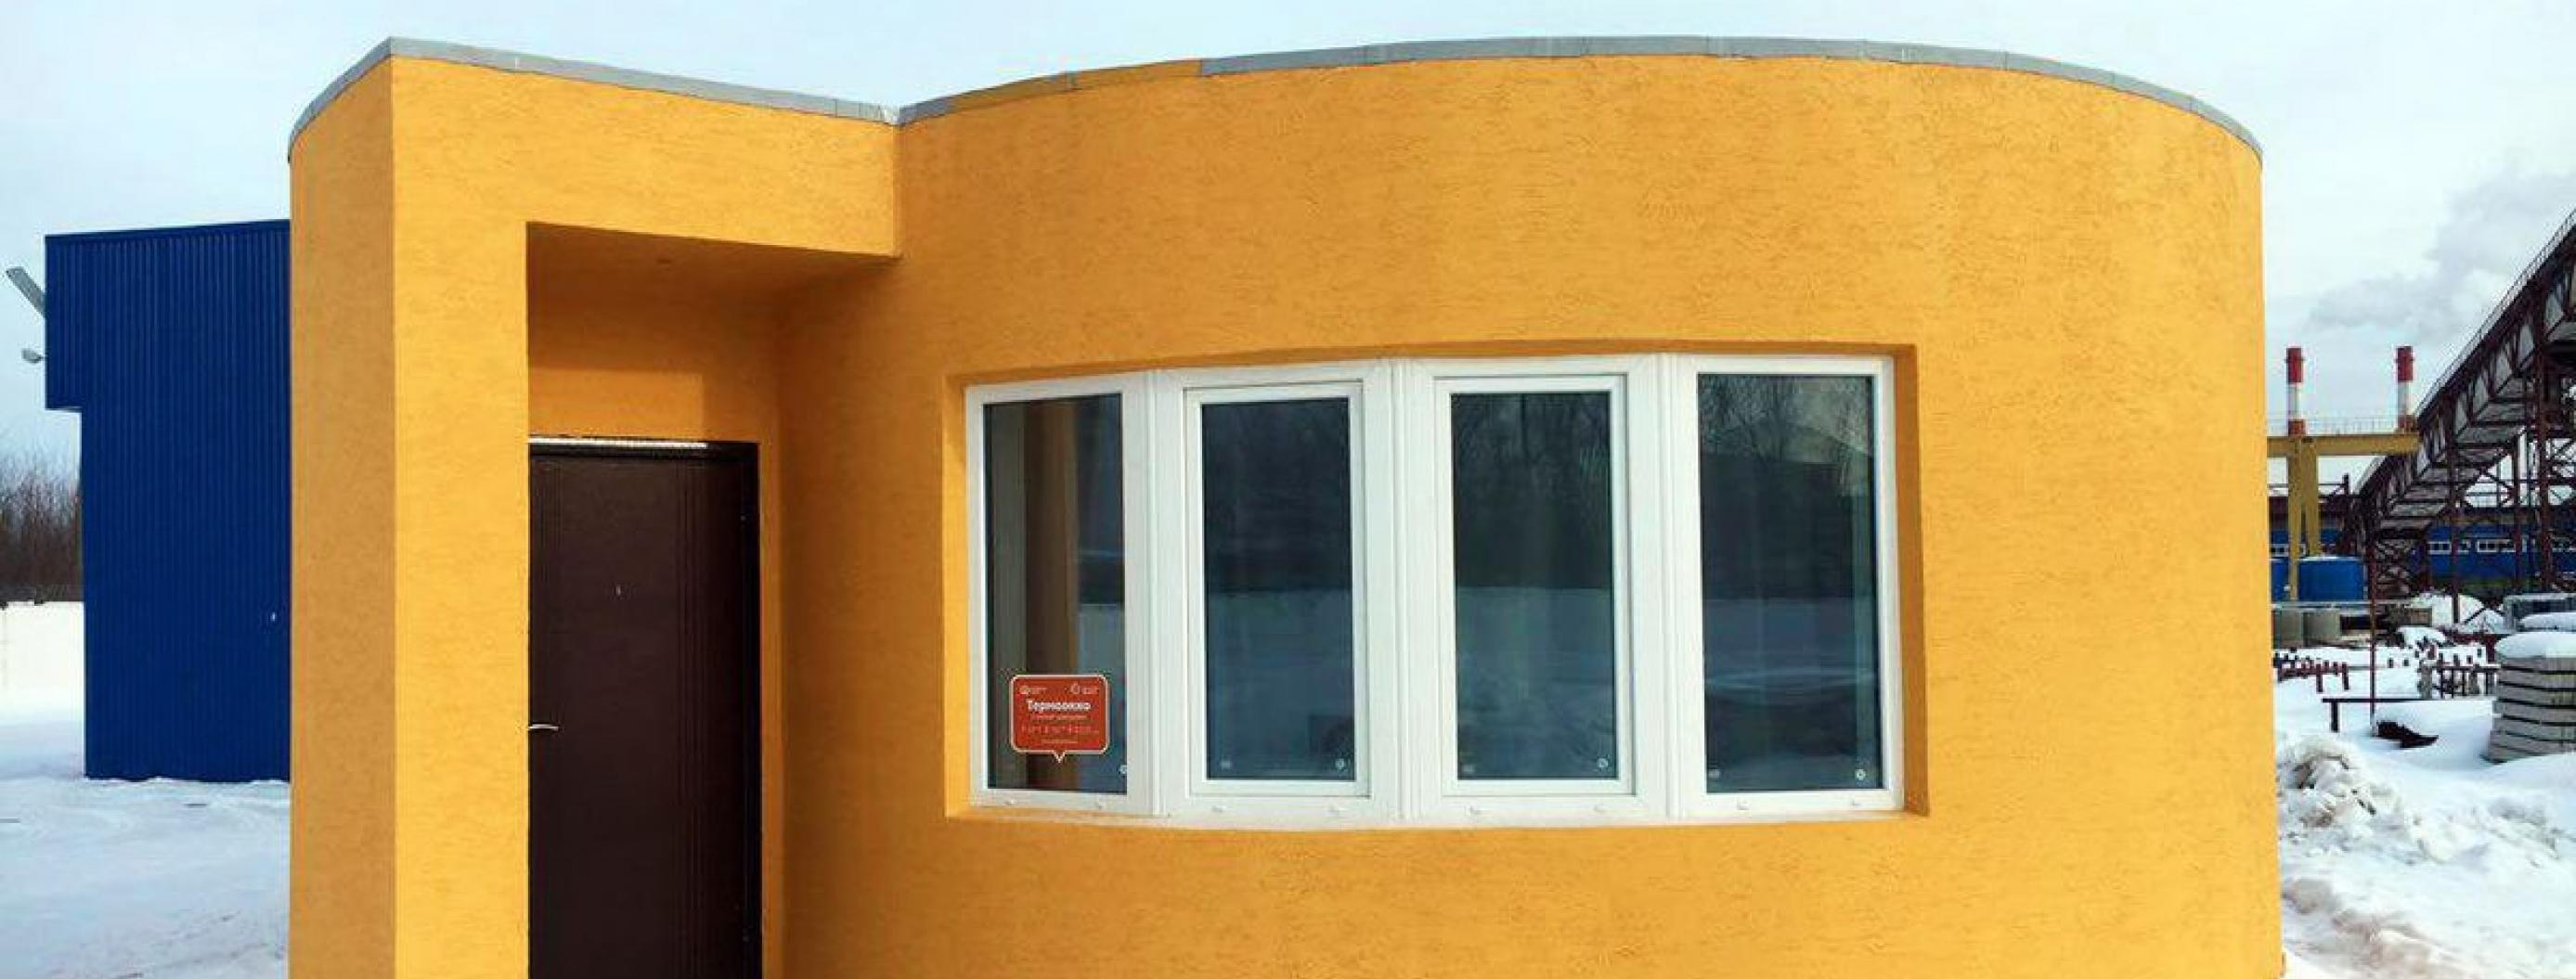 This House Was 3D Printed In Just 24 Hours (And It's Awesome!)